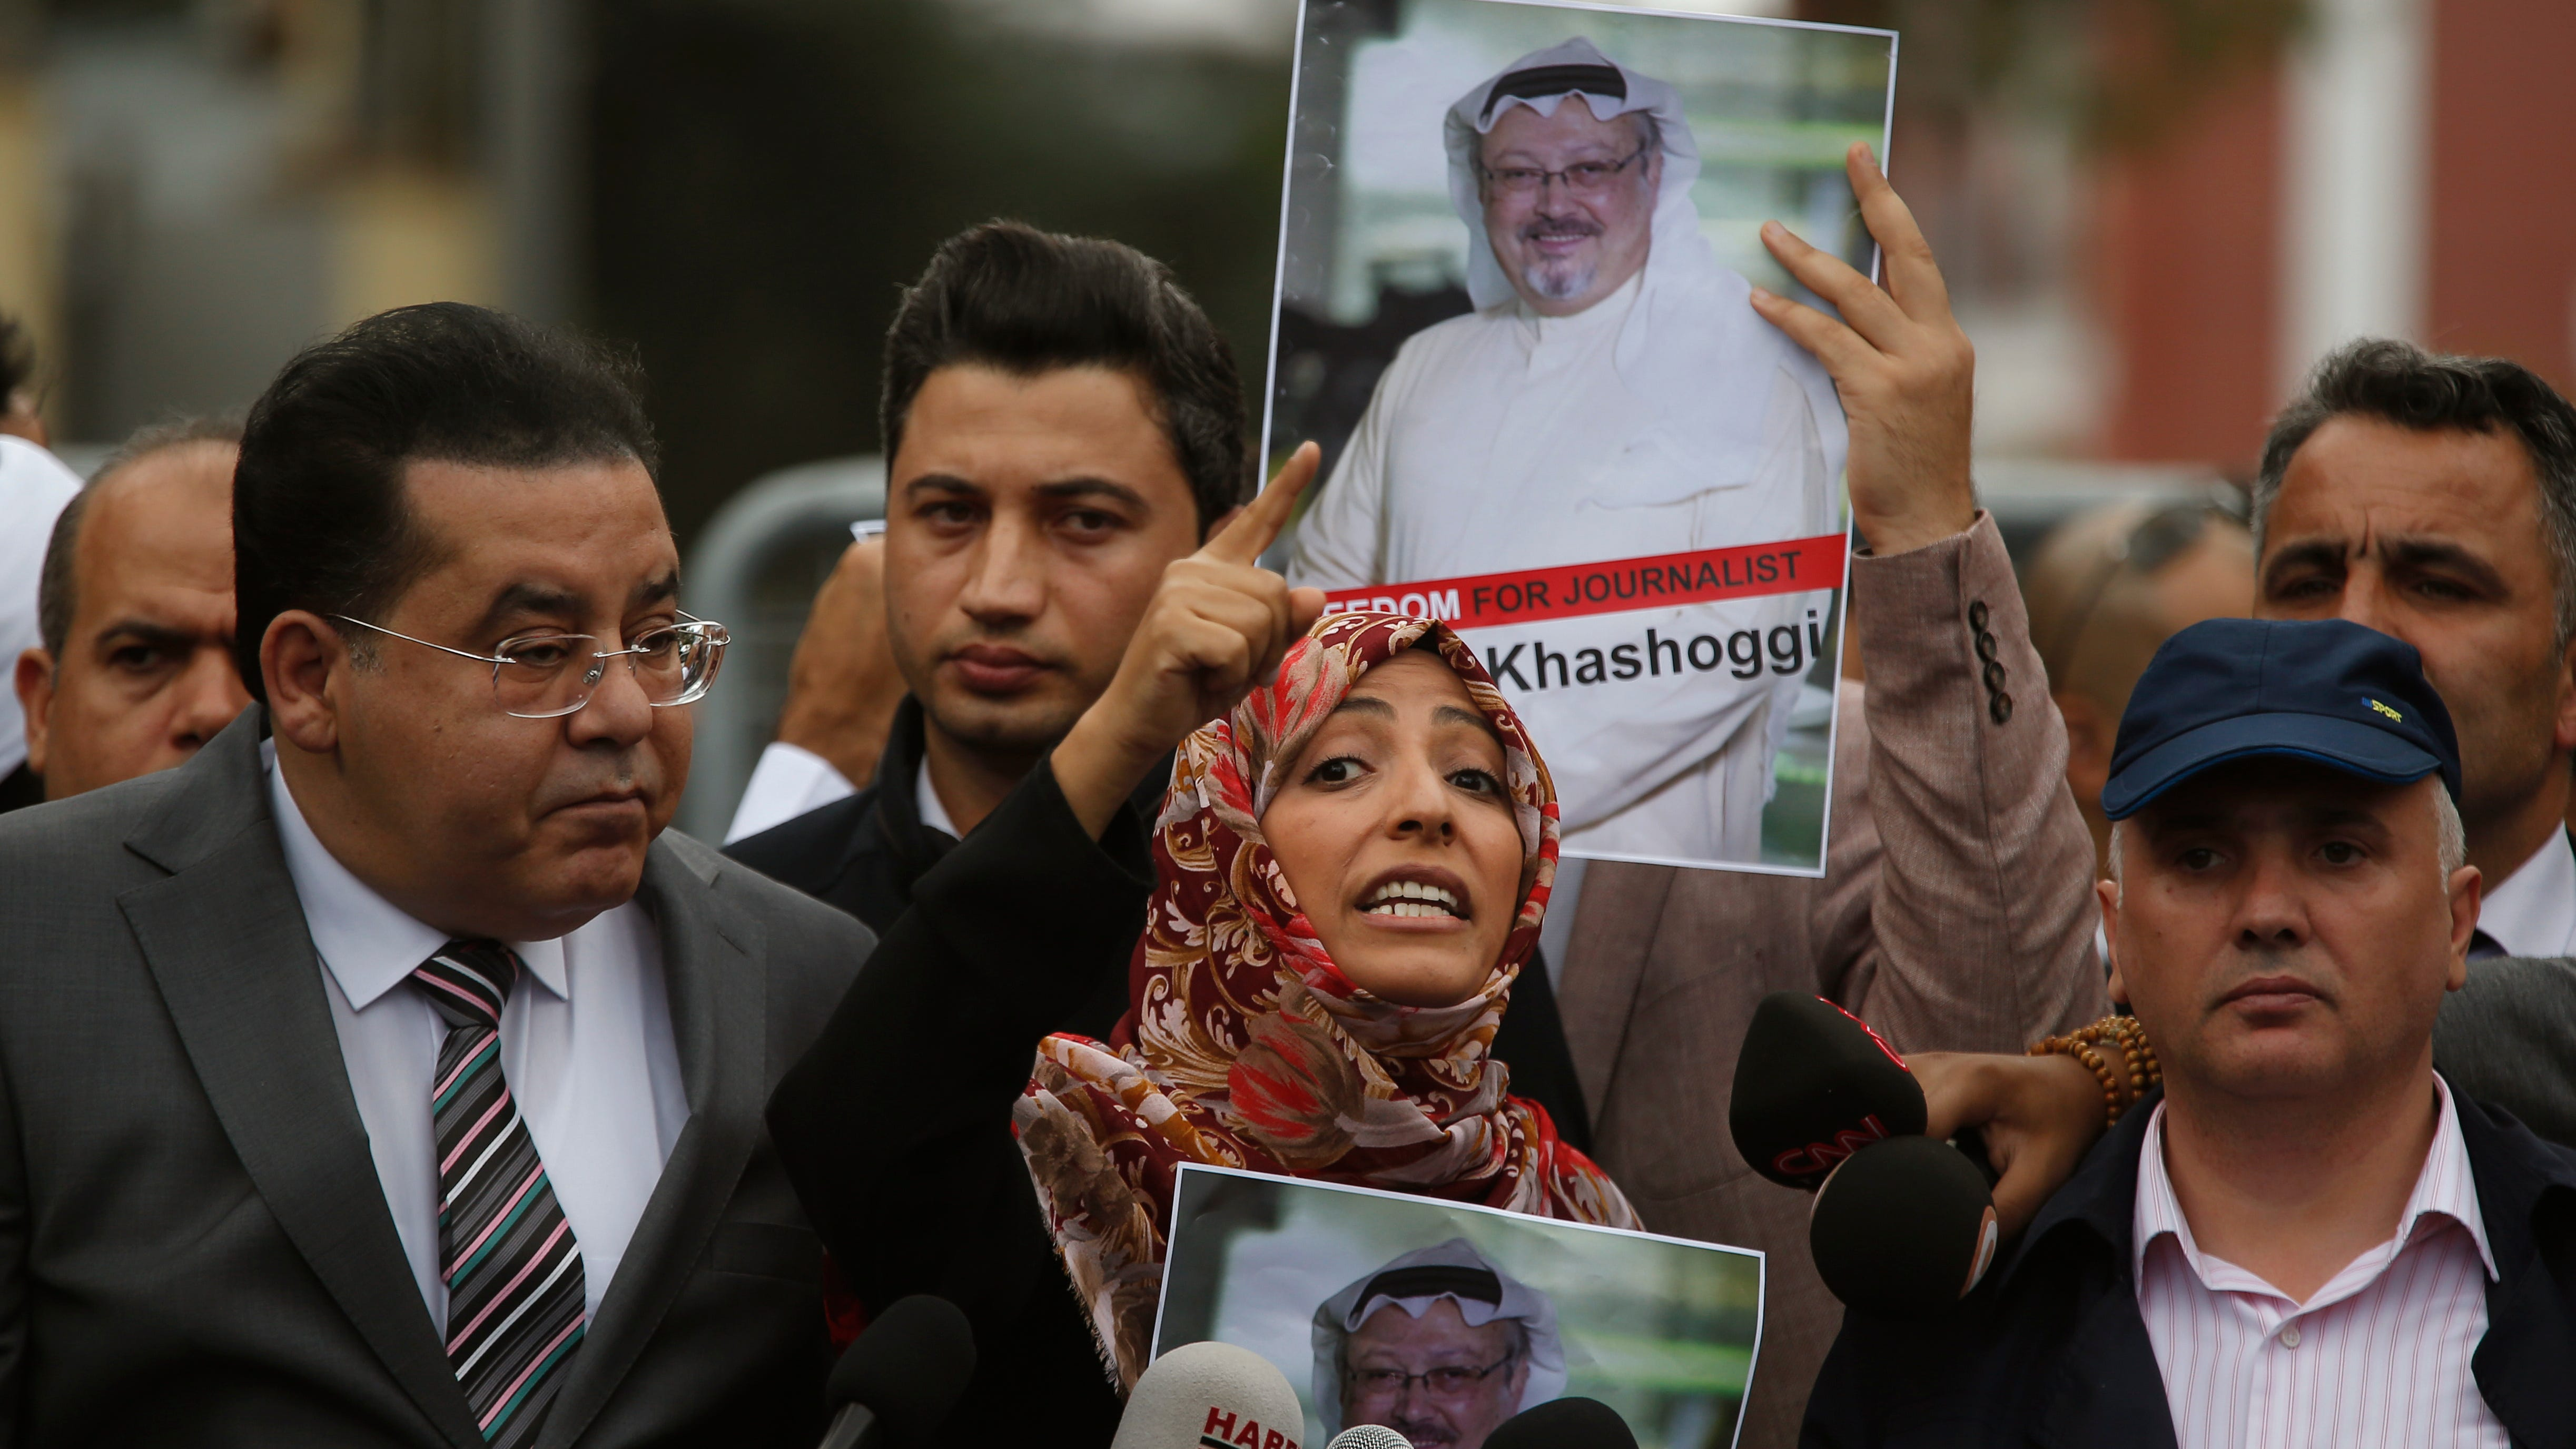 Tawakkol Karman, the Nobel Peace Prize laureate for 2011, gestures as she talks to members of the media about the disappearance of Saudi writer Jamal Khashoggi, near the Saudi Arabia consulate in Istanbul, Monday, Oct. 8, 2018.